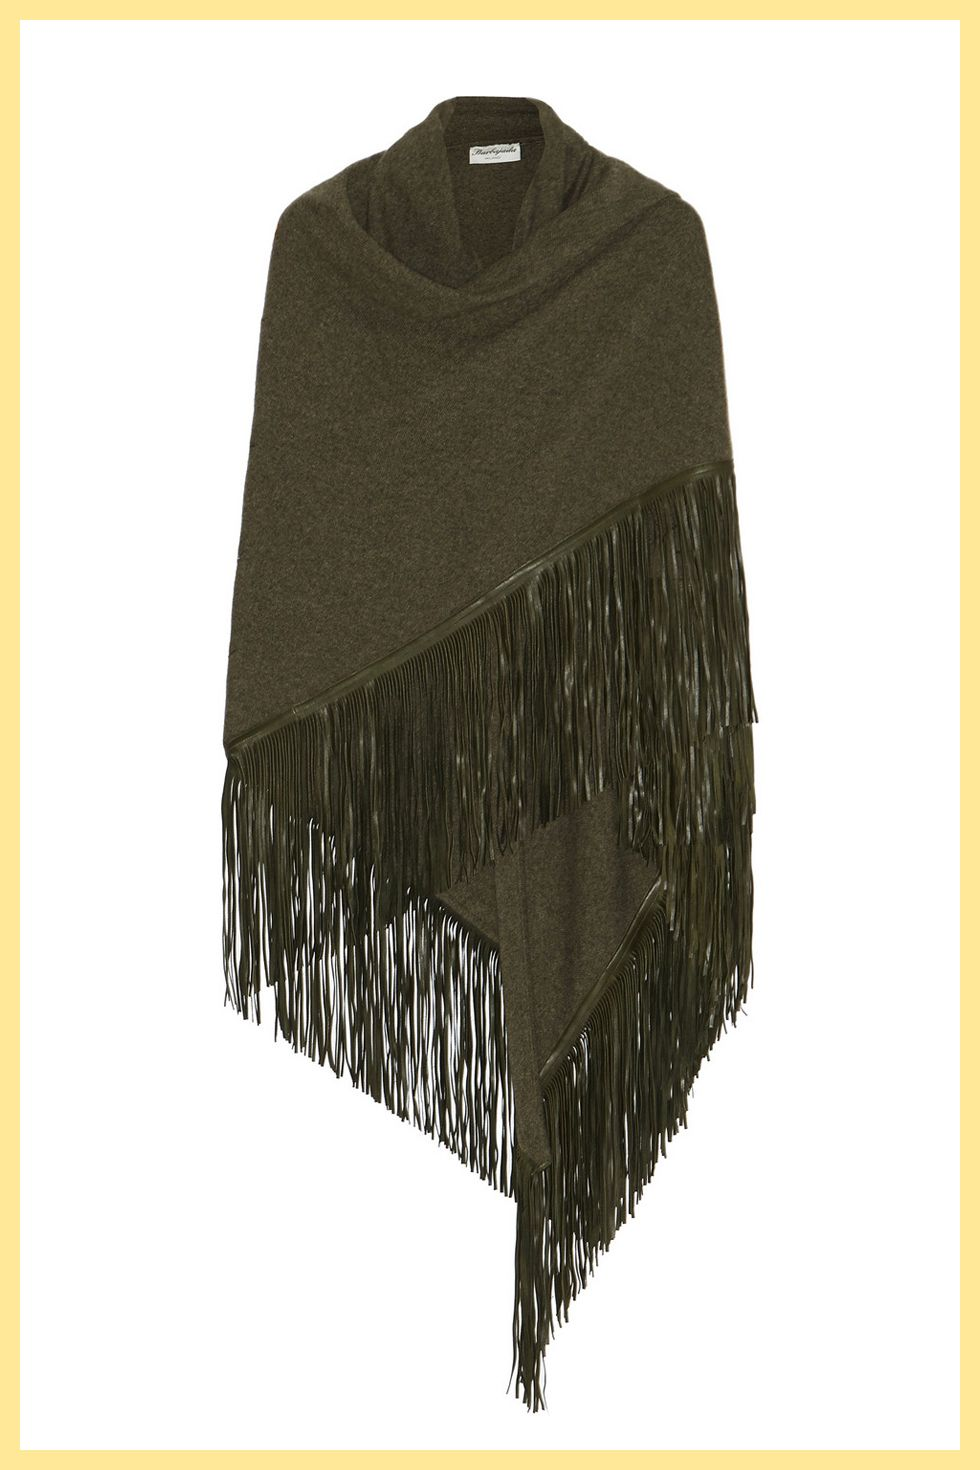 "<p>""Though fringe is very delicate, it can also be treated at home—just be sure to hand wash your favorite fringe pieces to prevent any tangling,"" says Zoe. ""I always say you can never have too much fringe in your closet.""</p><p>Barbajada wrap, $925; <a href=""https://www.net-a-porter.com/us/en/product/632742/Barbajada/fringed-leather-and-cashmere-wrap"" target=""_blank"">net-a-porter.com</a></p>"